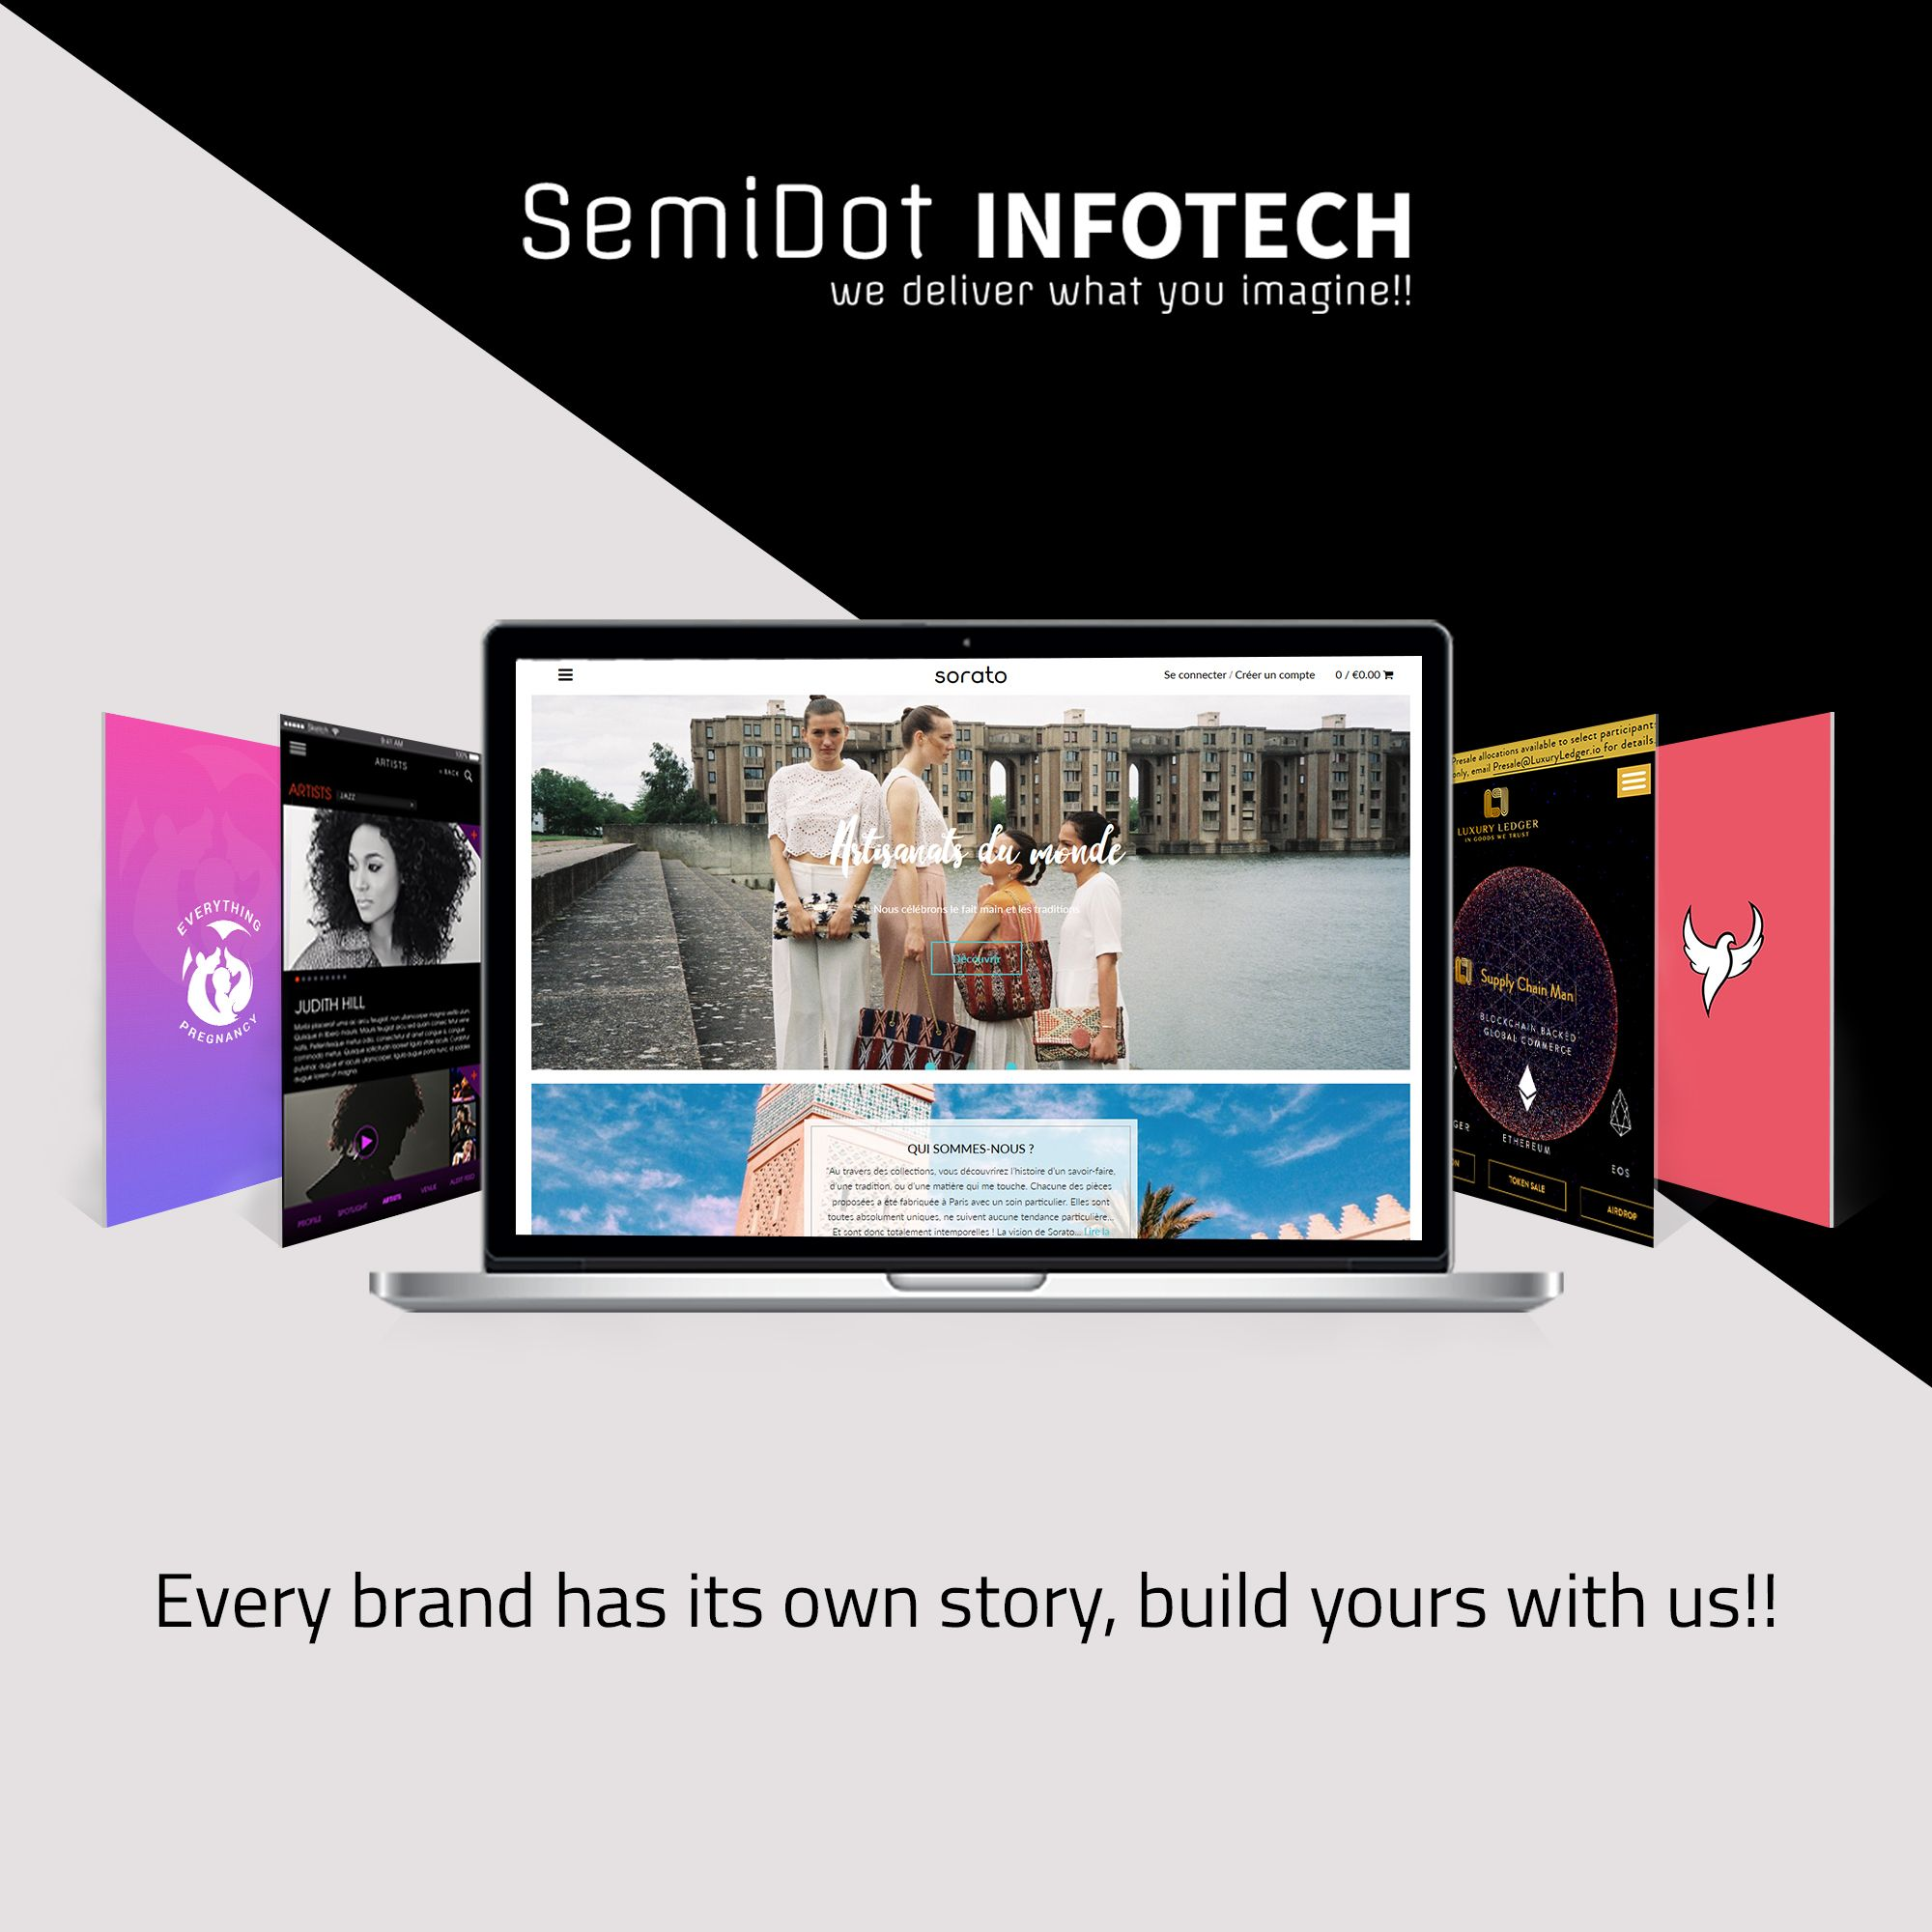 Every brand needs its own authentic story, build yours